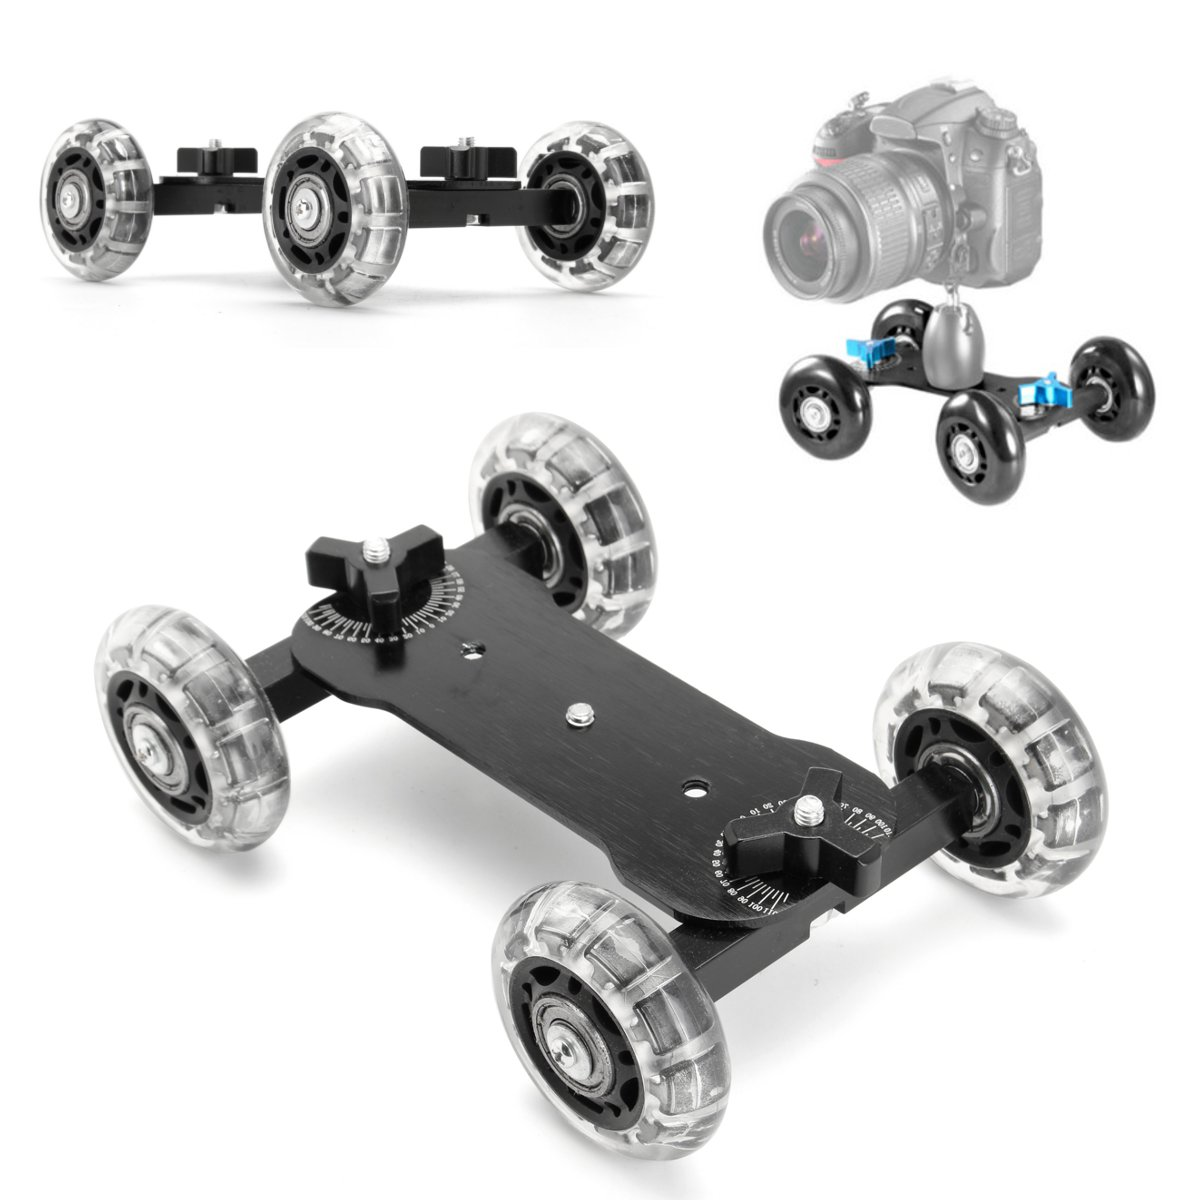 DSLR Desktop Camera <font><b>Video</b></font> Wheels Rail Rolling Track Slider Dolly Car Skate Glide Camera Rolling Sliding Dolly Stabilizer Skater image